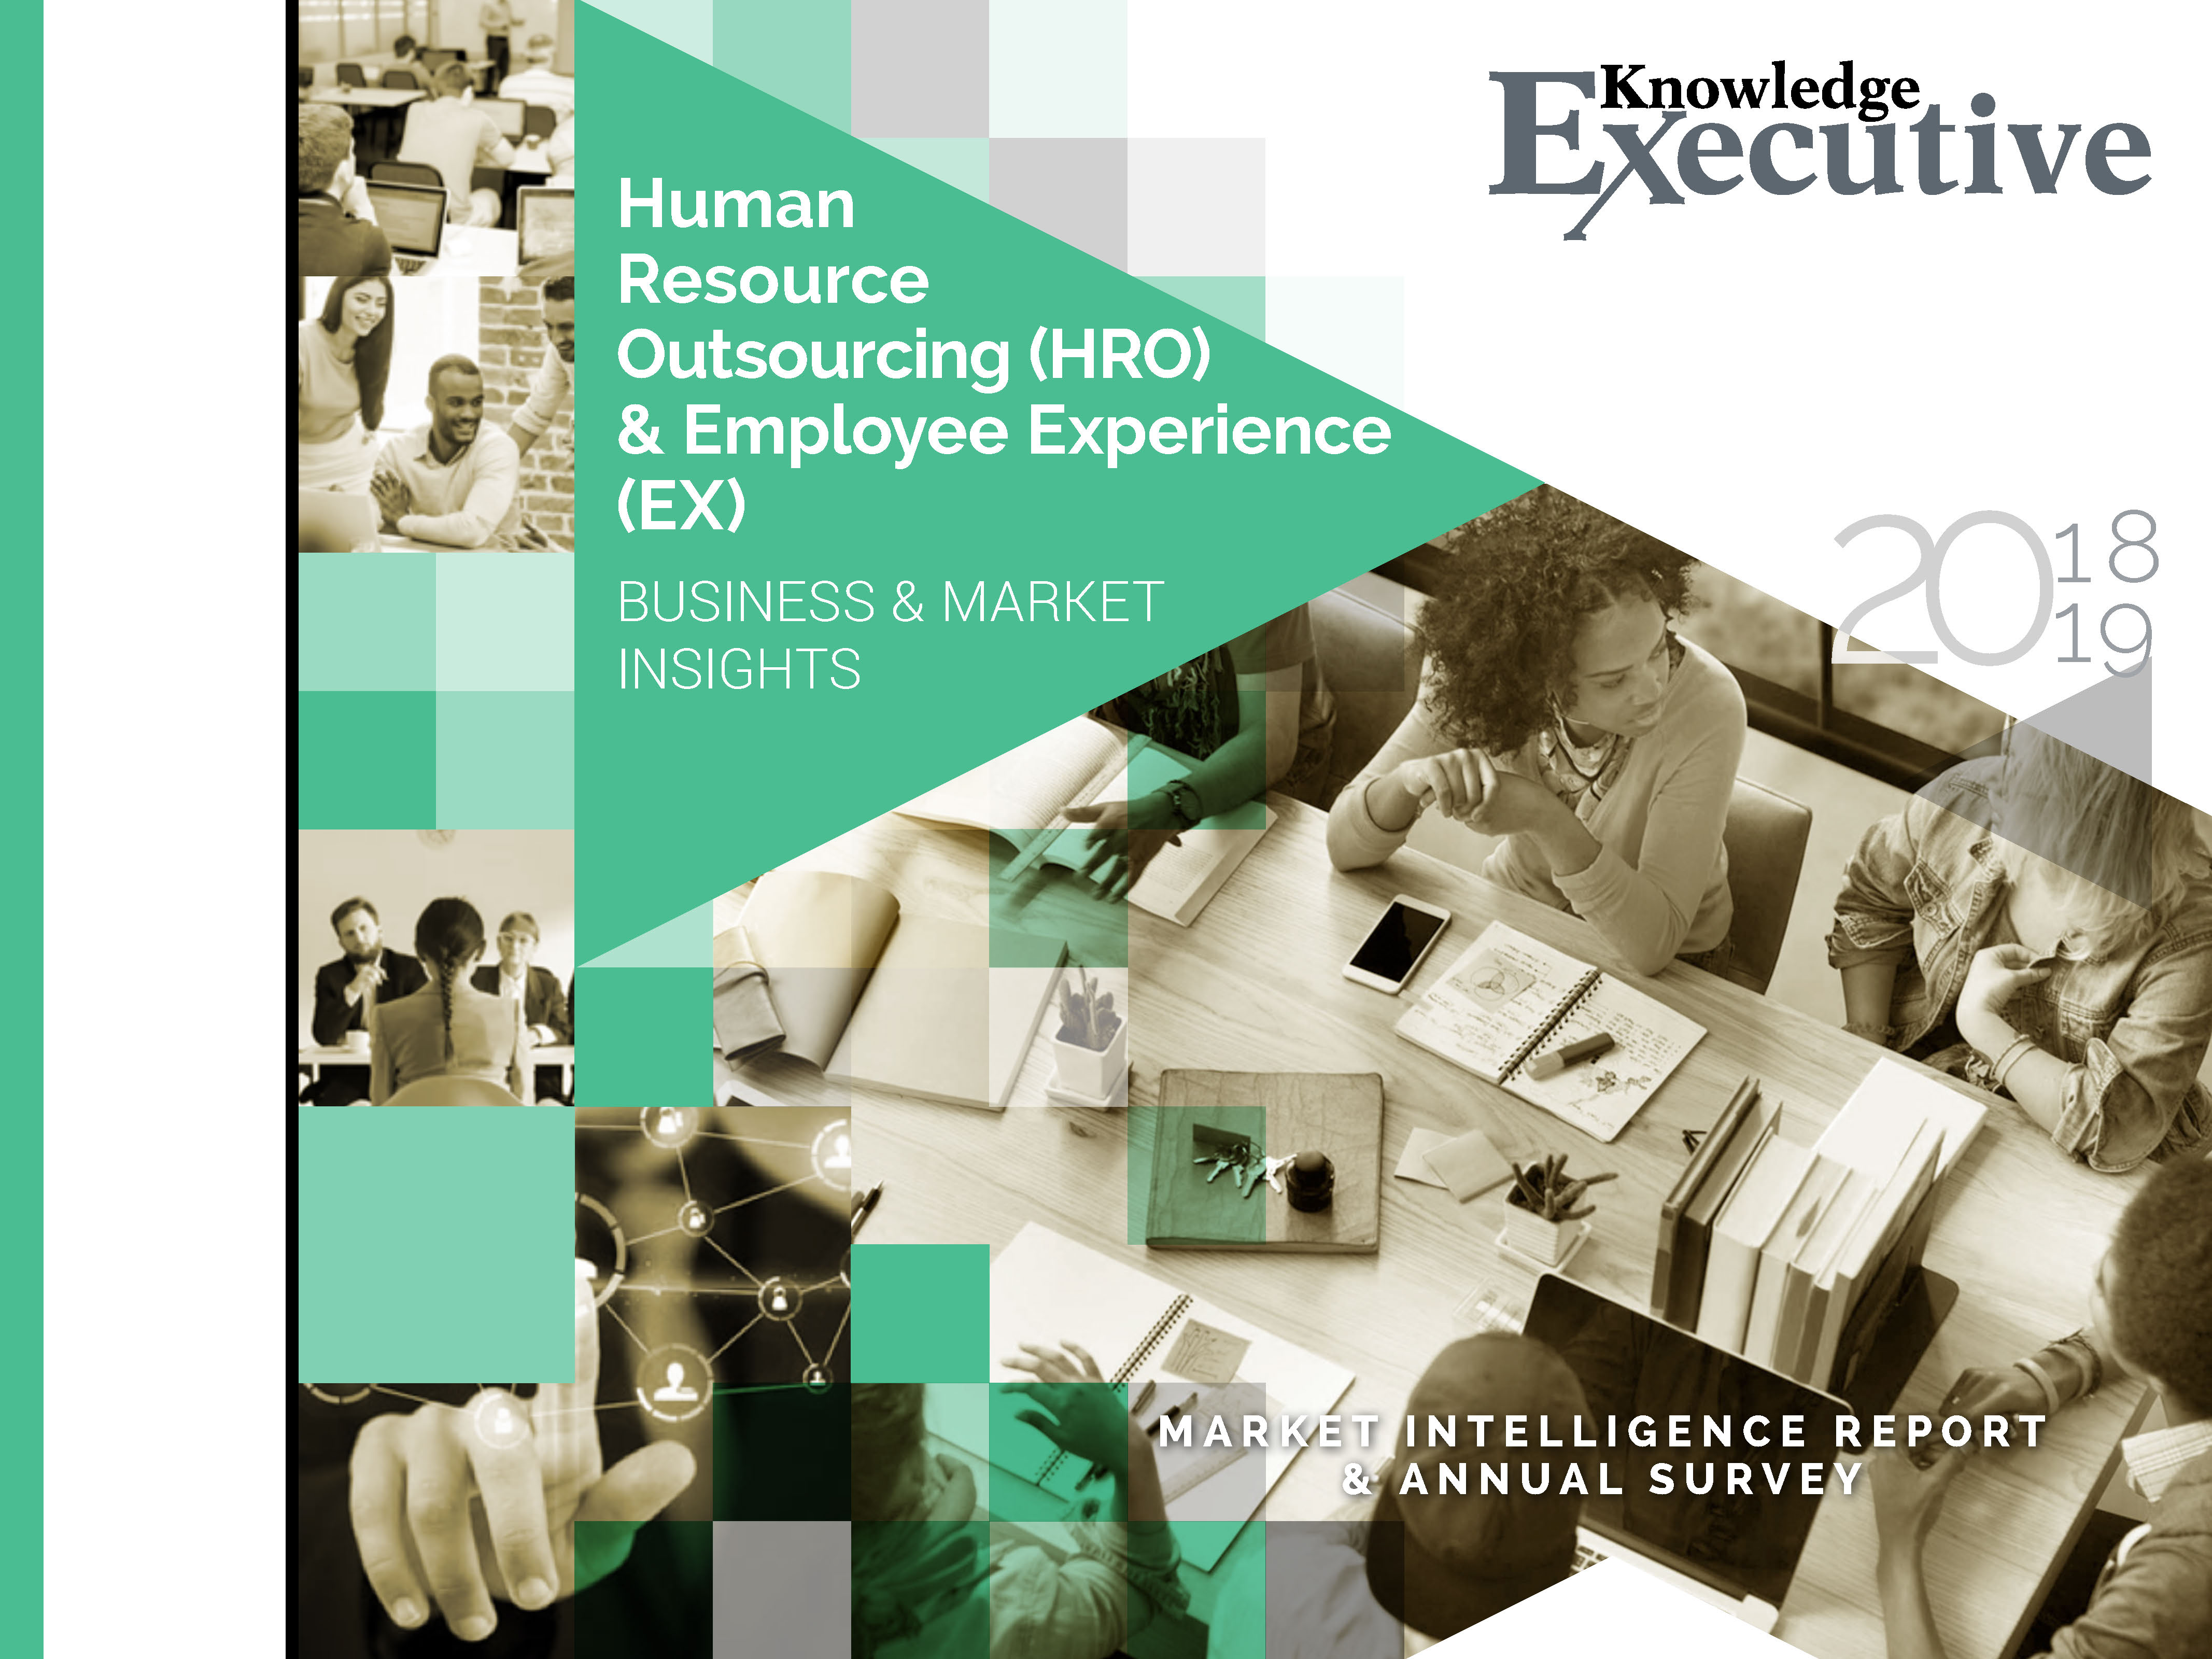 Human Resource Outsourcing (HRO) & Employee Experience (EX)